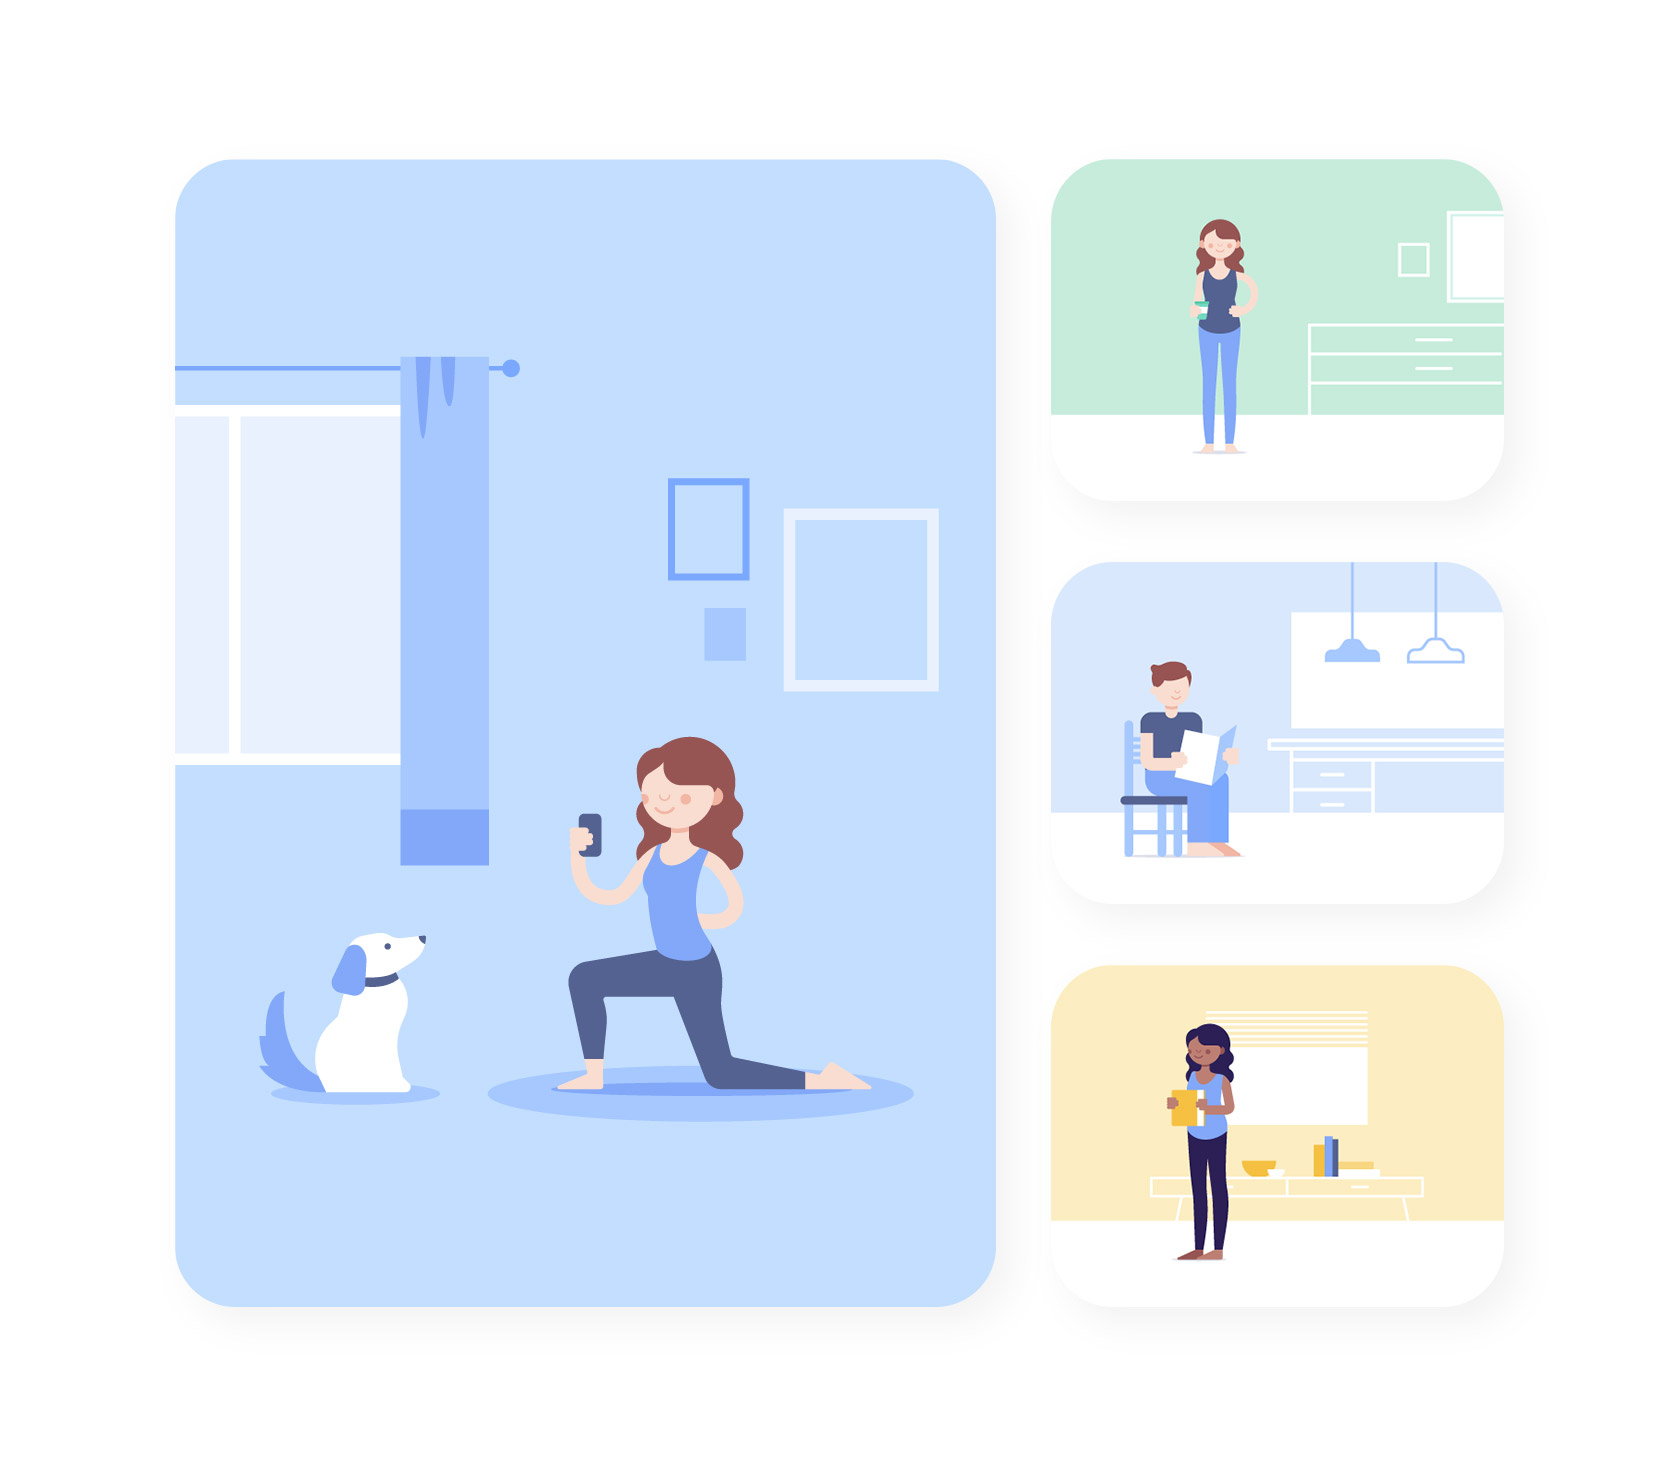 Illustrations created for the landing page